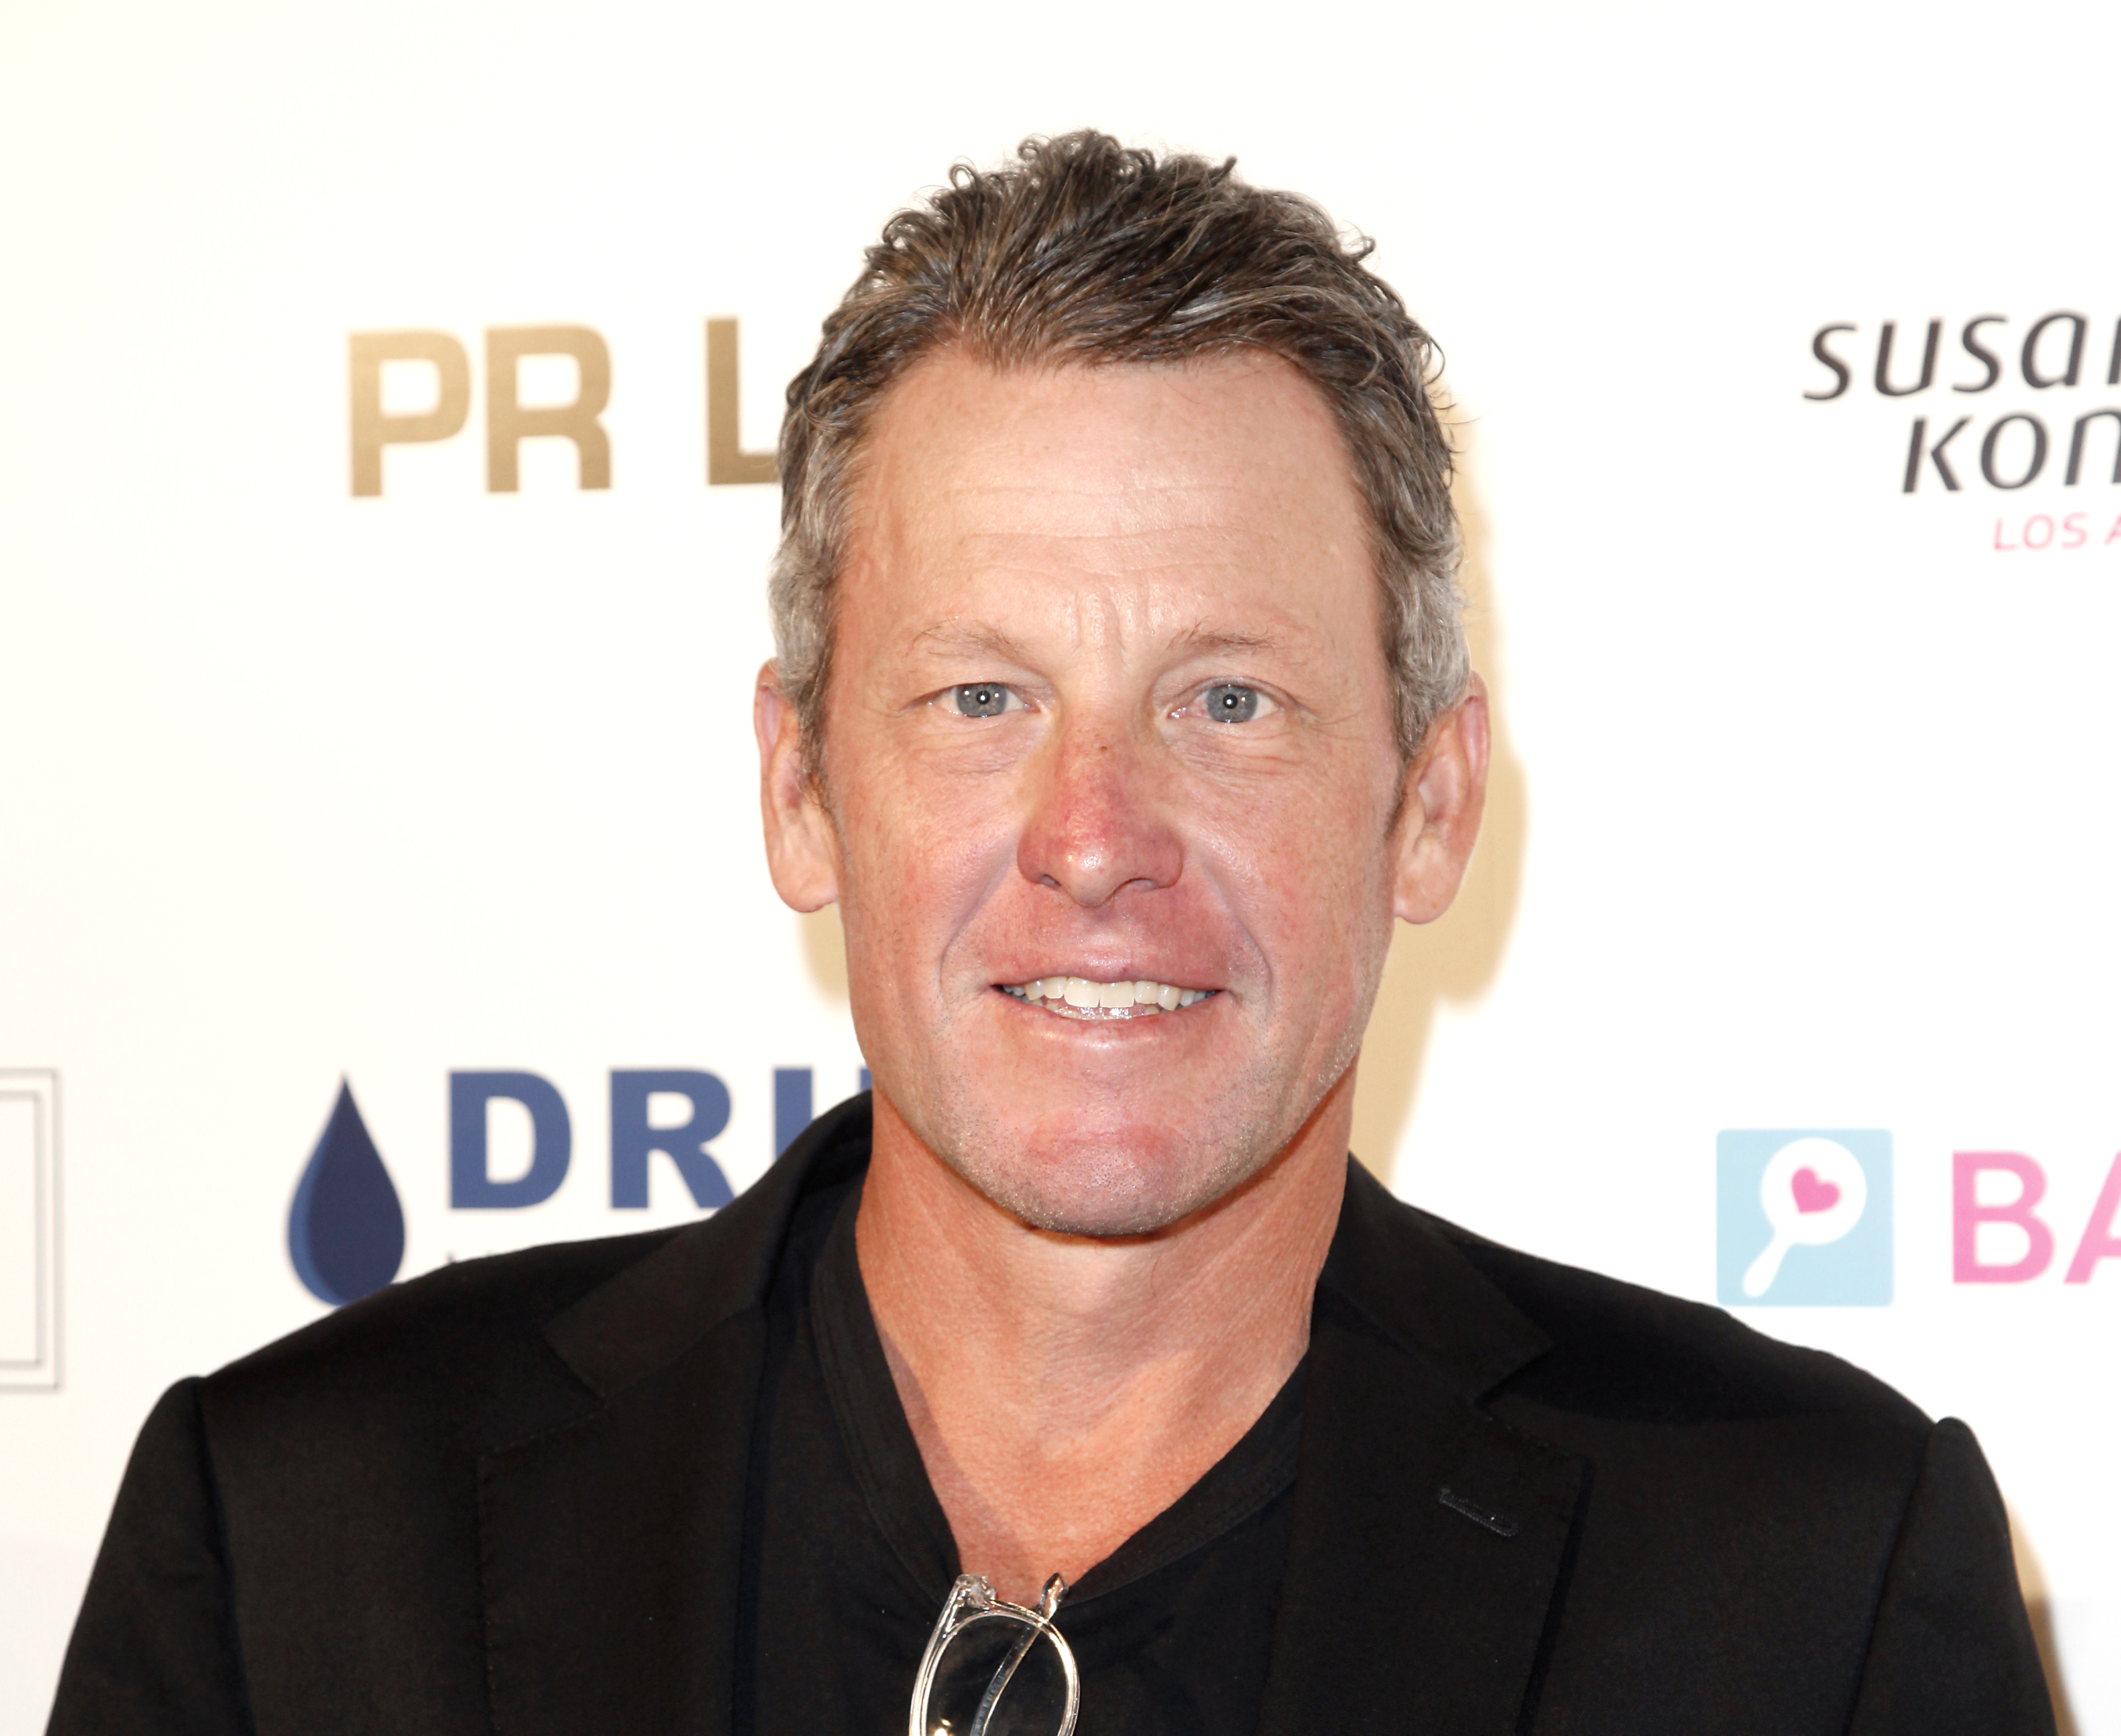 Lance Armstrong attend the Babes for Boobs live auction benefiting Susan G. Komen LA at El Rey Theatre on June 7, 2018 in Los Angeles, California.